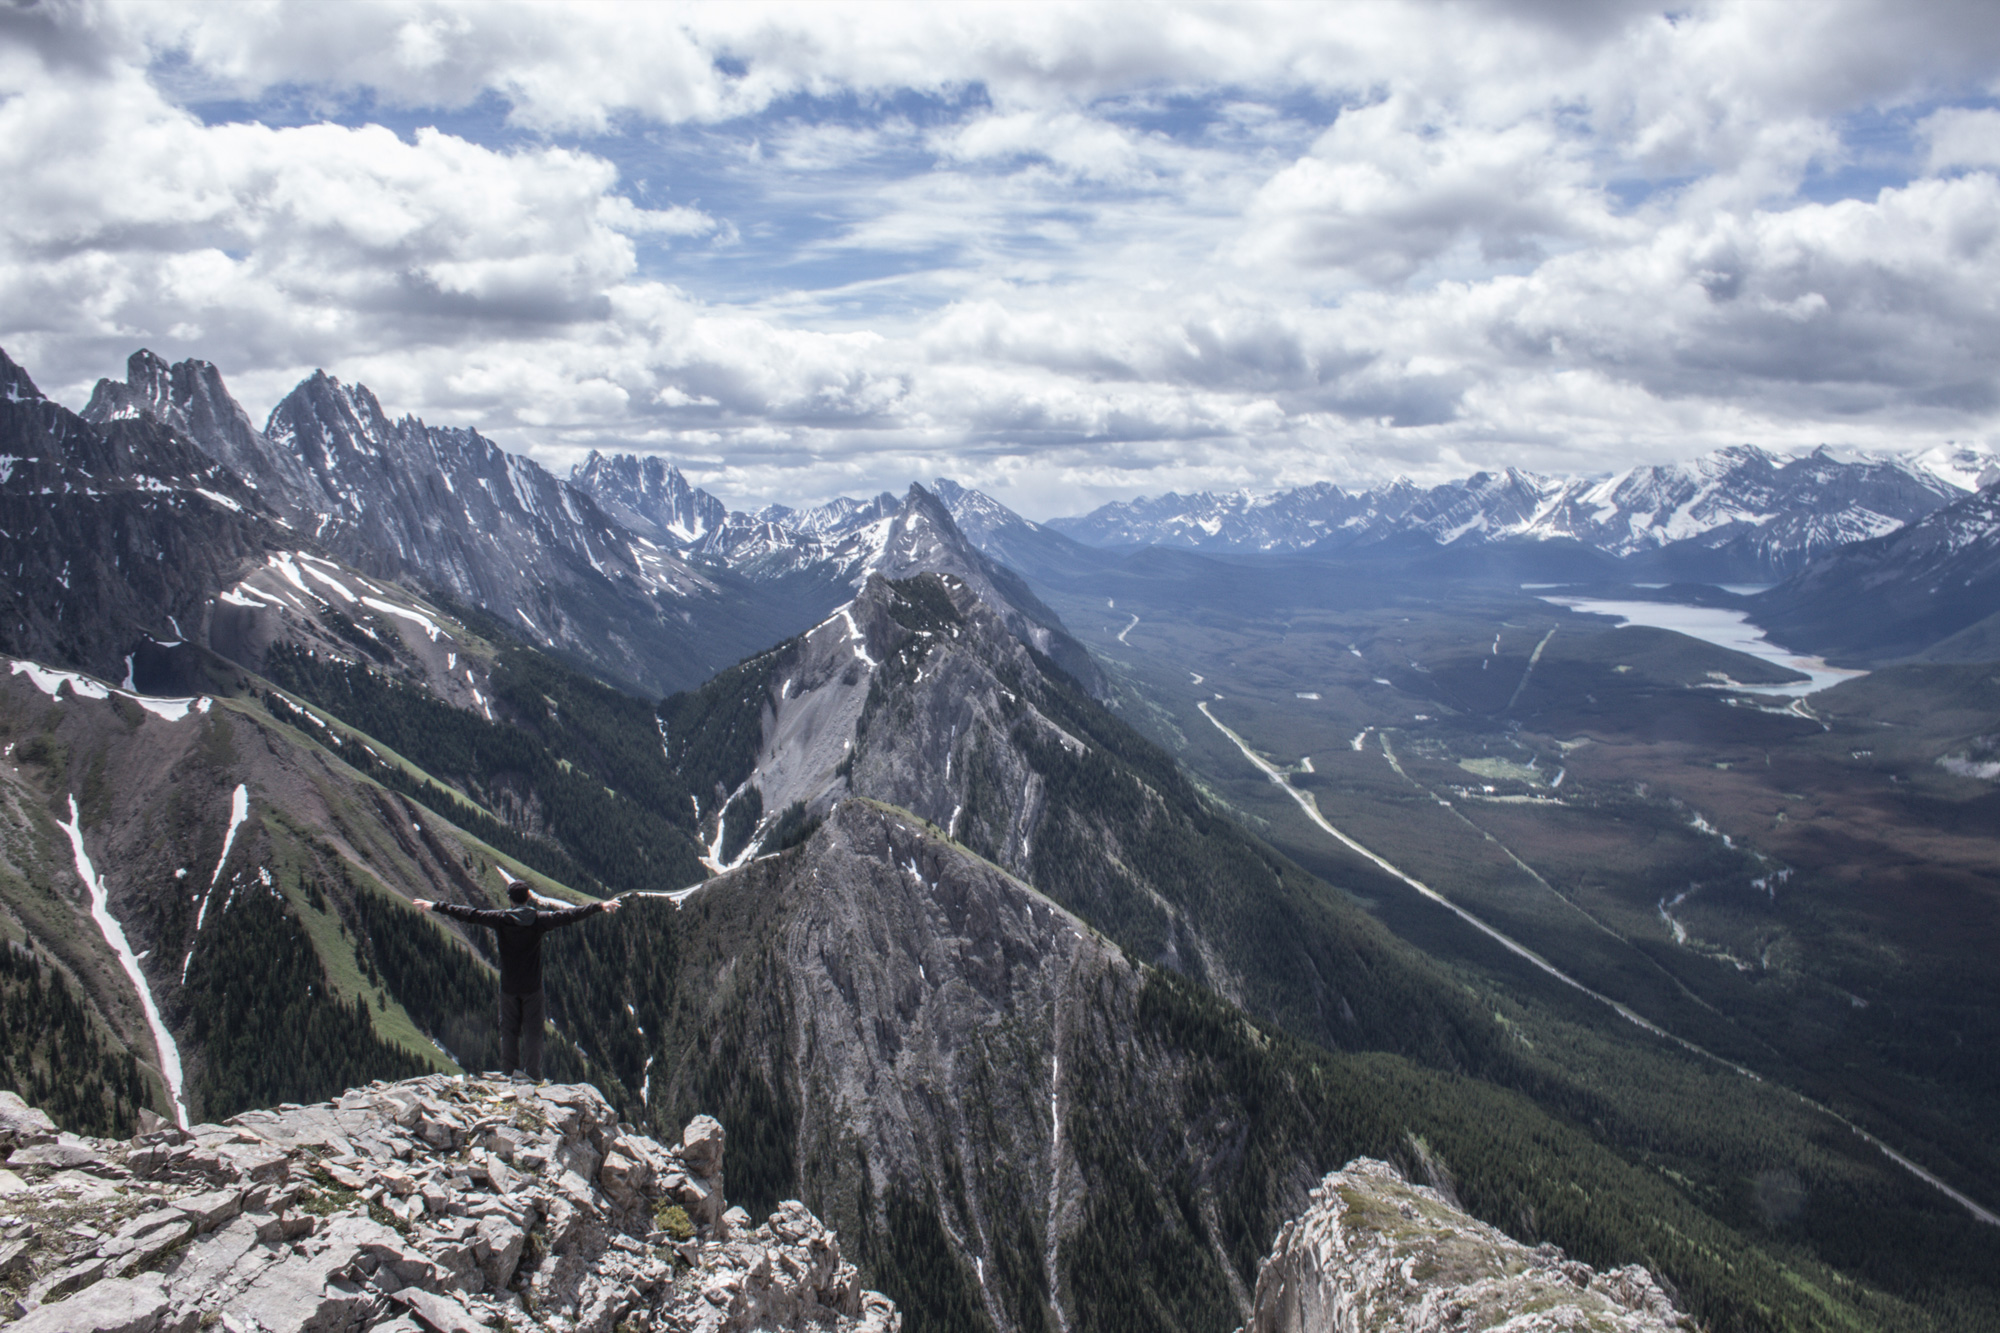 Cal on top of Grizzly Peak, Kananaskis Country